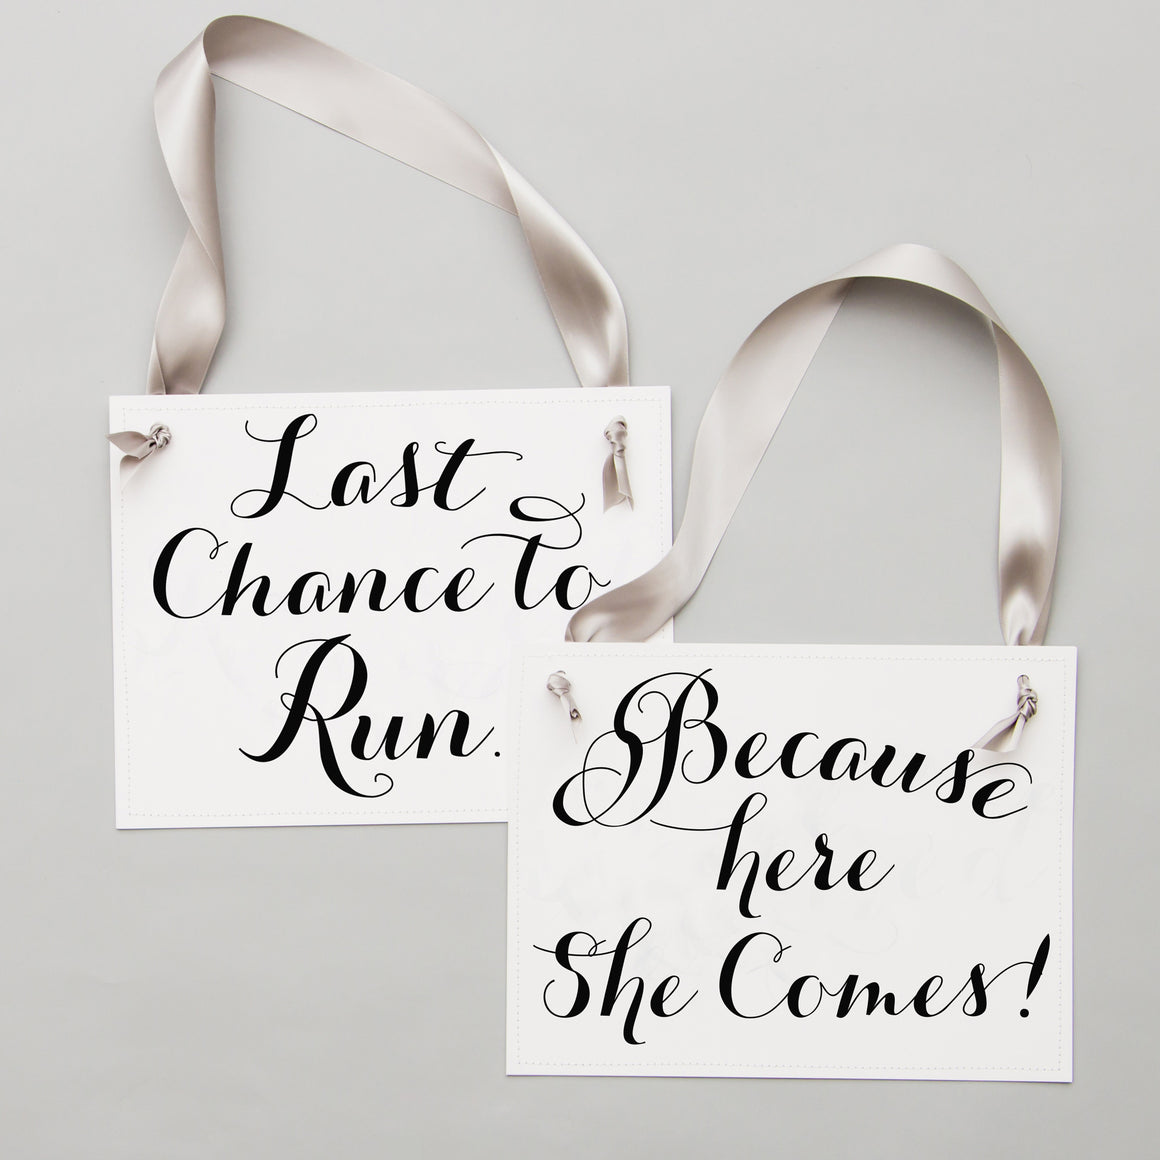 set of 2 flower girl ring bearer wedding signs last chance to run because here she comes